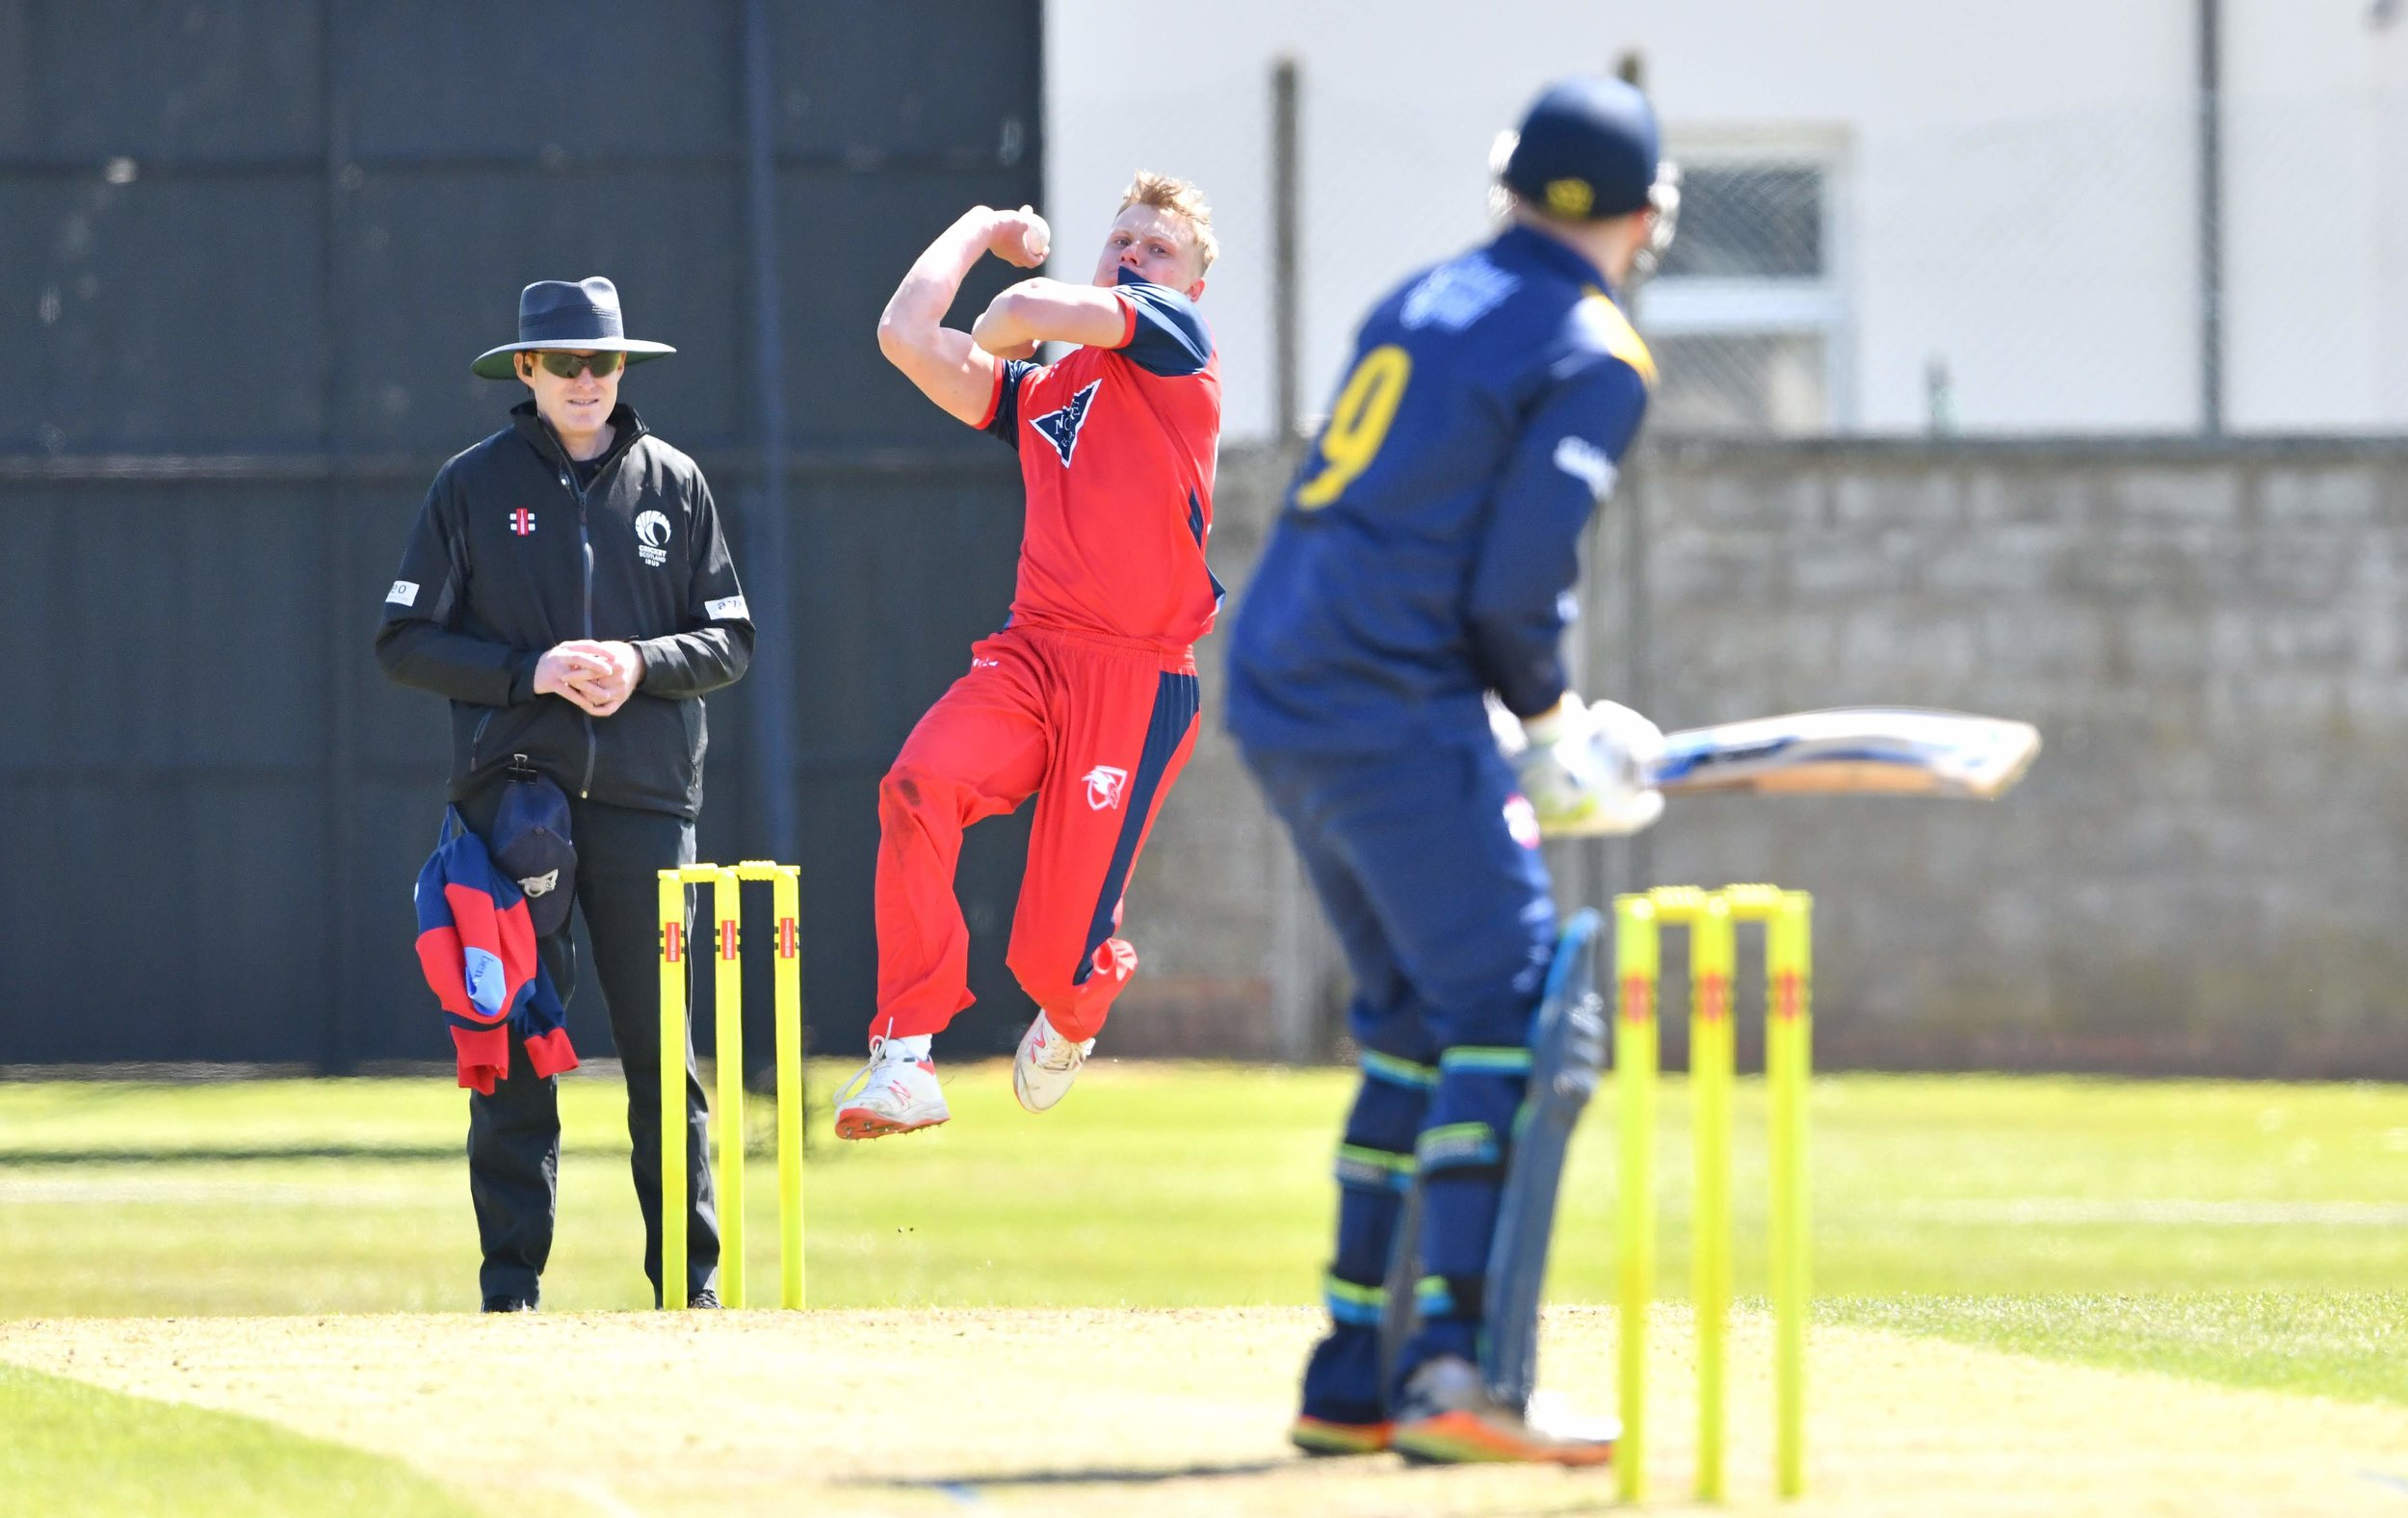 Elliot+Ruthven+approaches+the+wicket.jpg